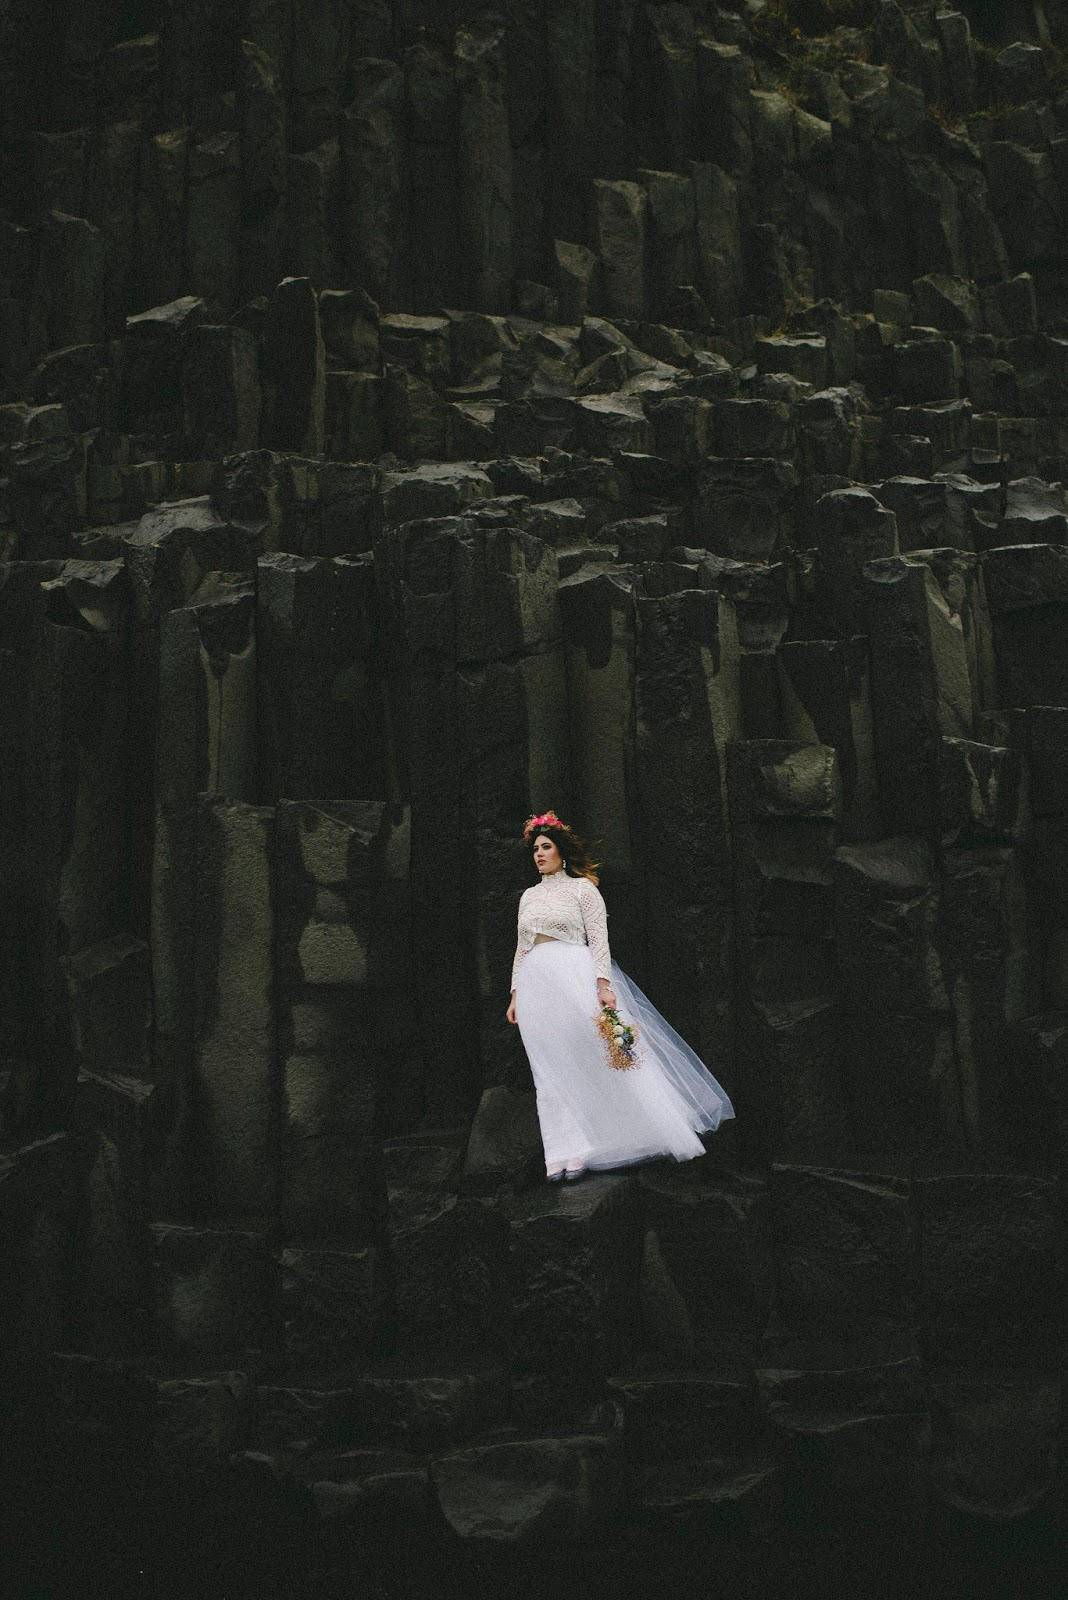 Vík, Reynisfjara, Basalt, Column, Wedding, Elopement, Bridal, Portrait